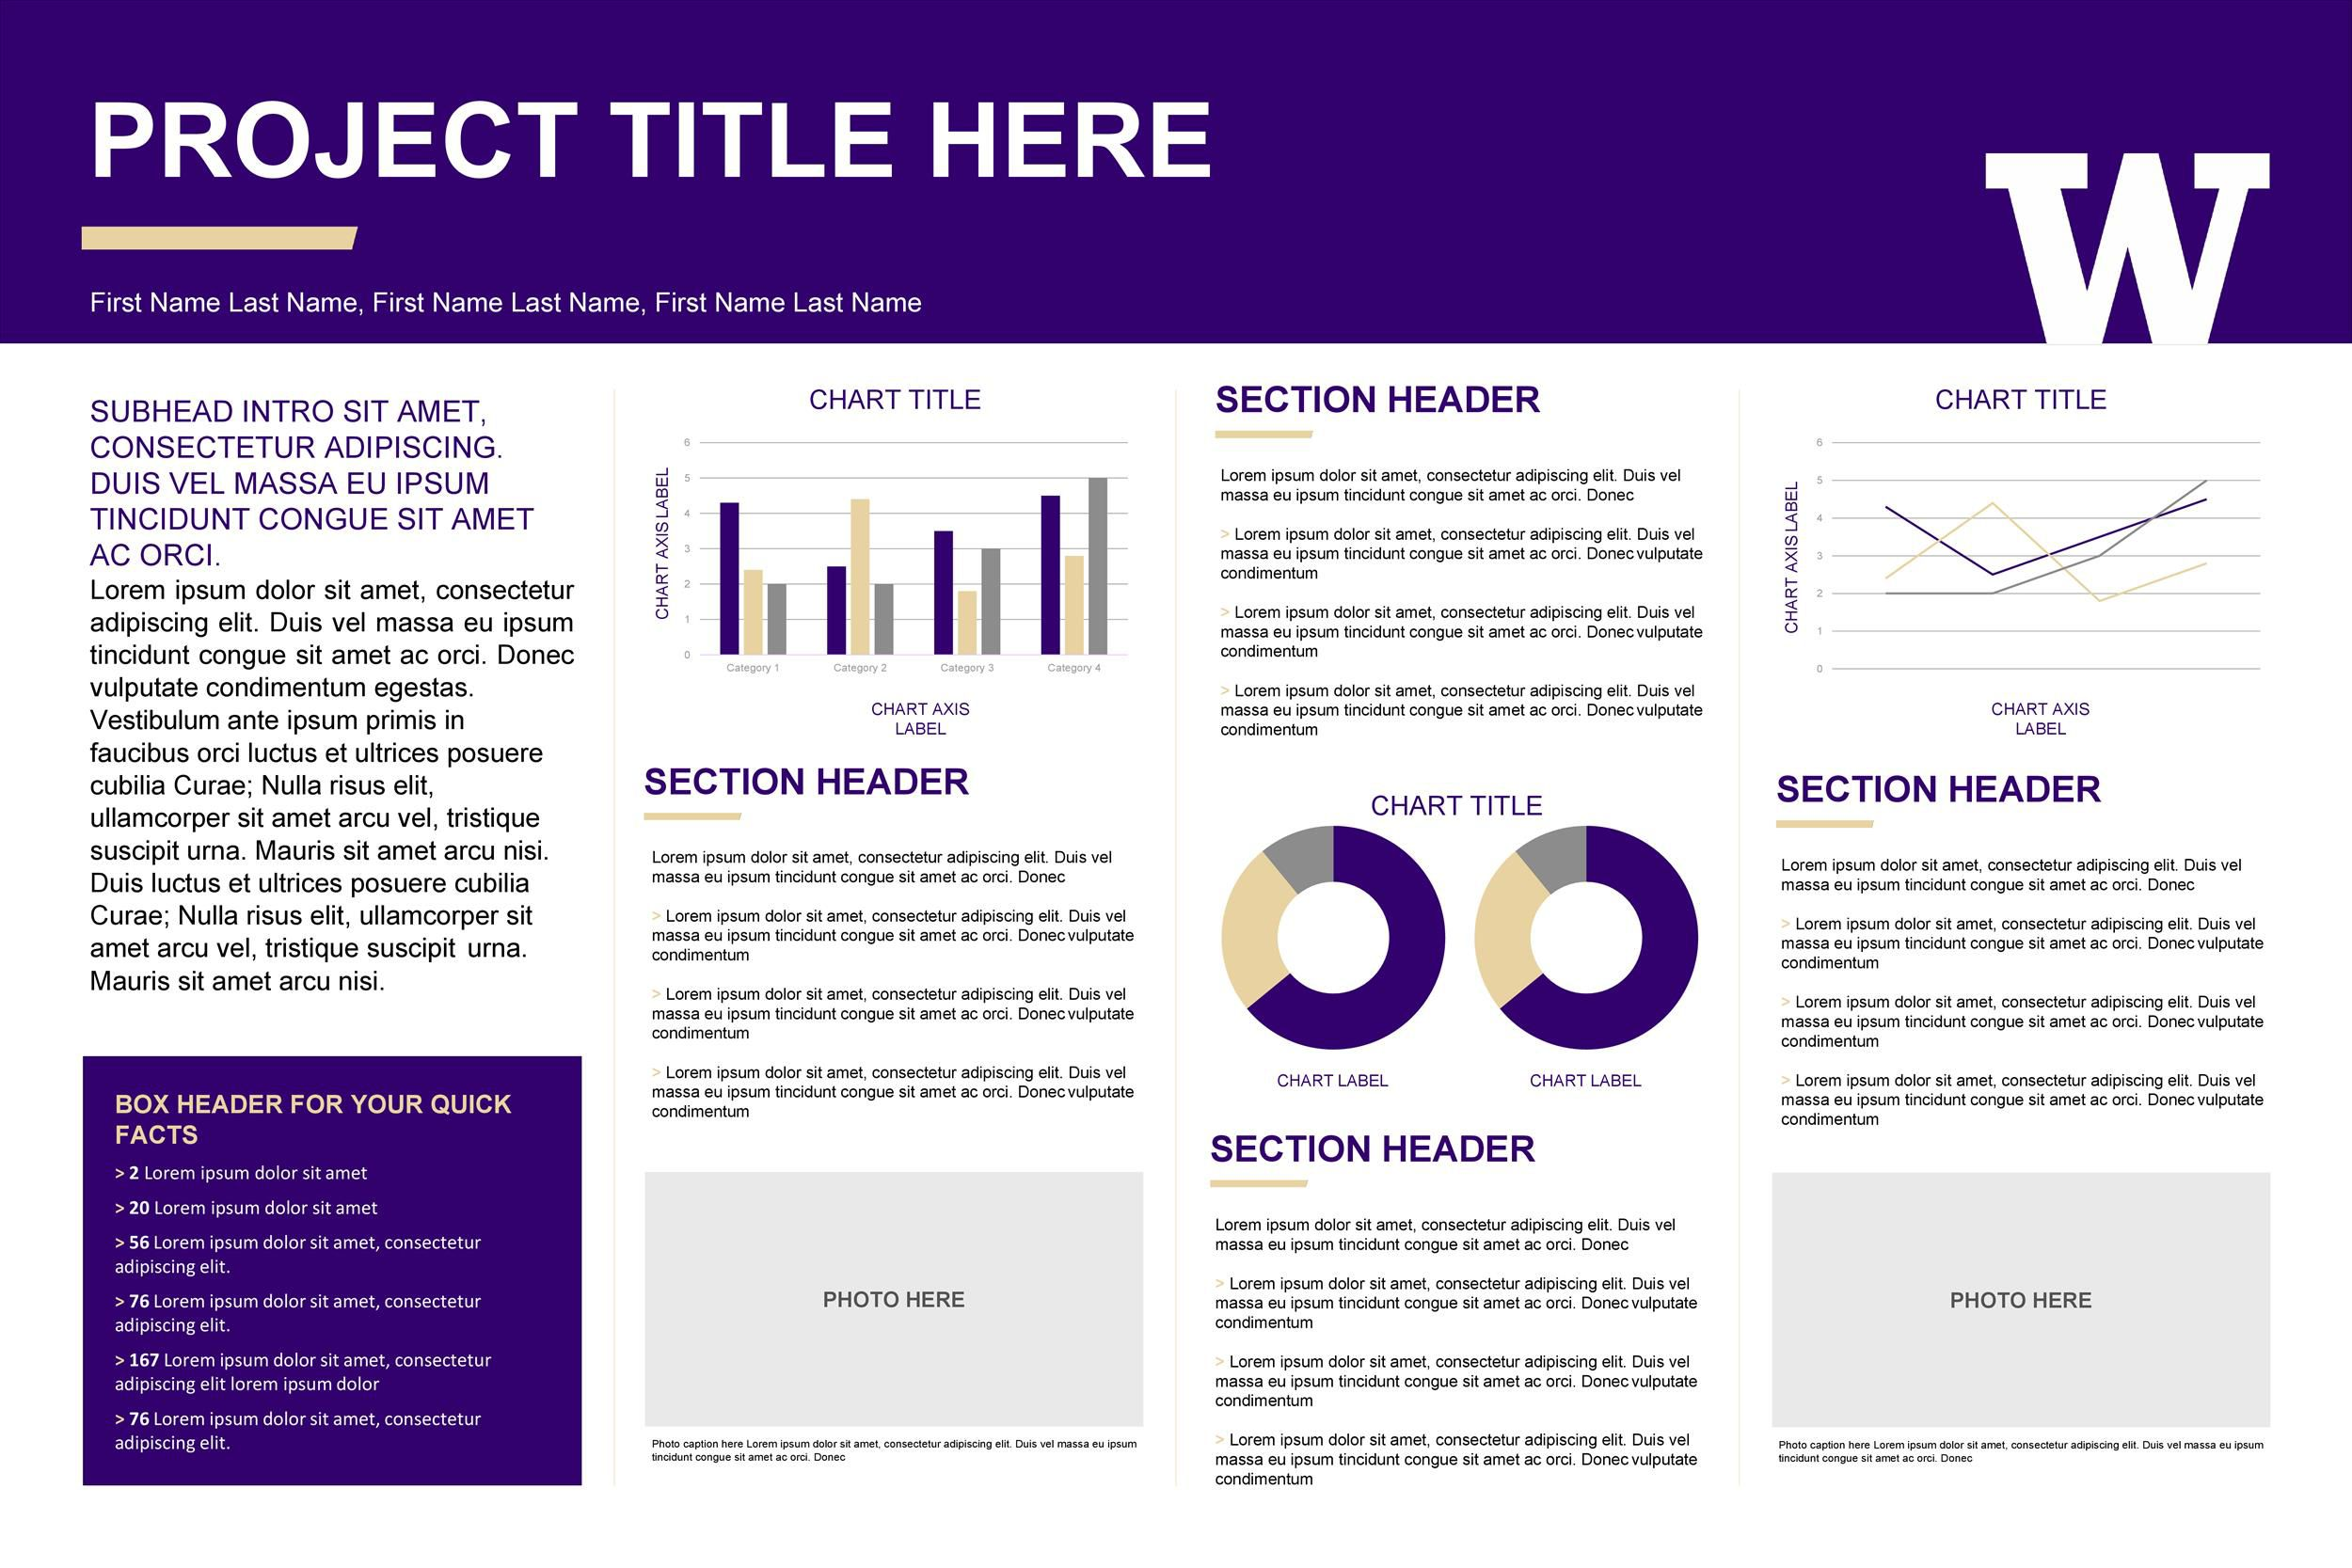 008 Stunning Scientific Poster Template Free Download Inspiration  A1 CreativeFull